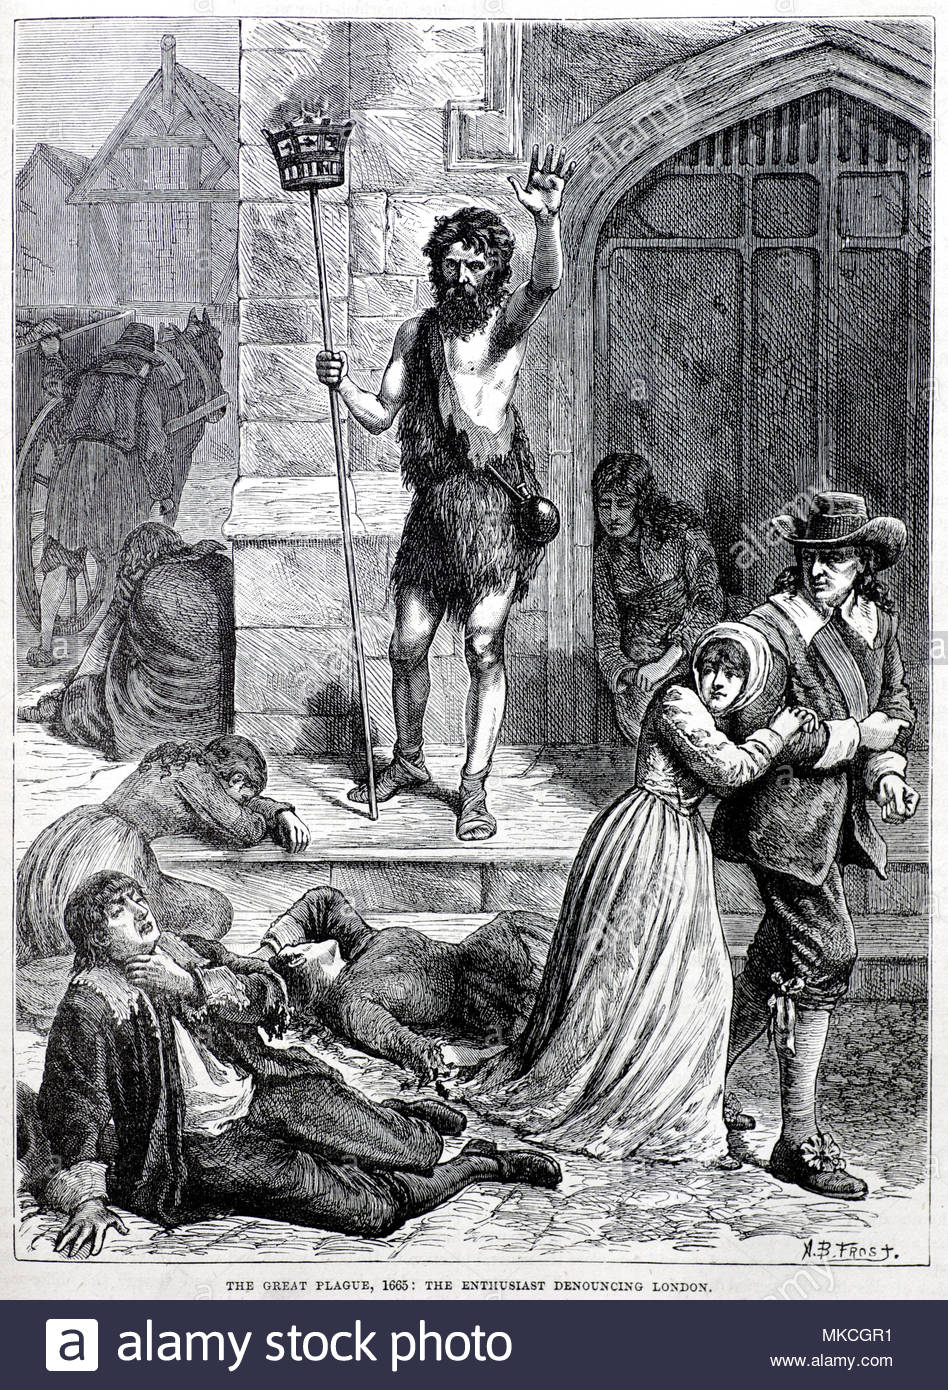 The Great Plague of London 1665, the Enthusiast denouncing London, antique  illustration from circa 1880